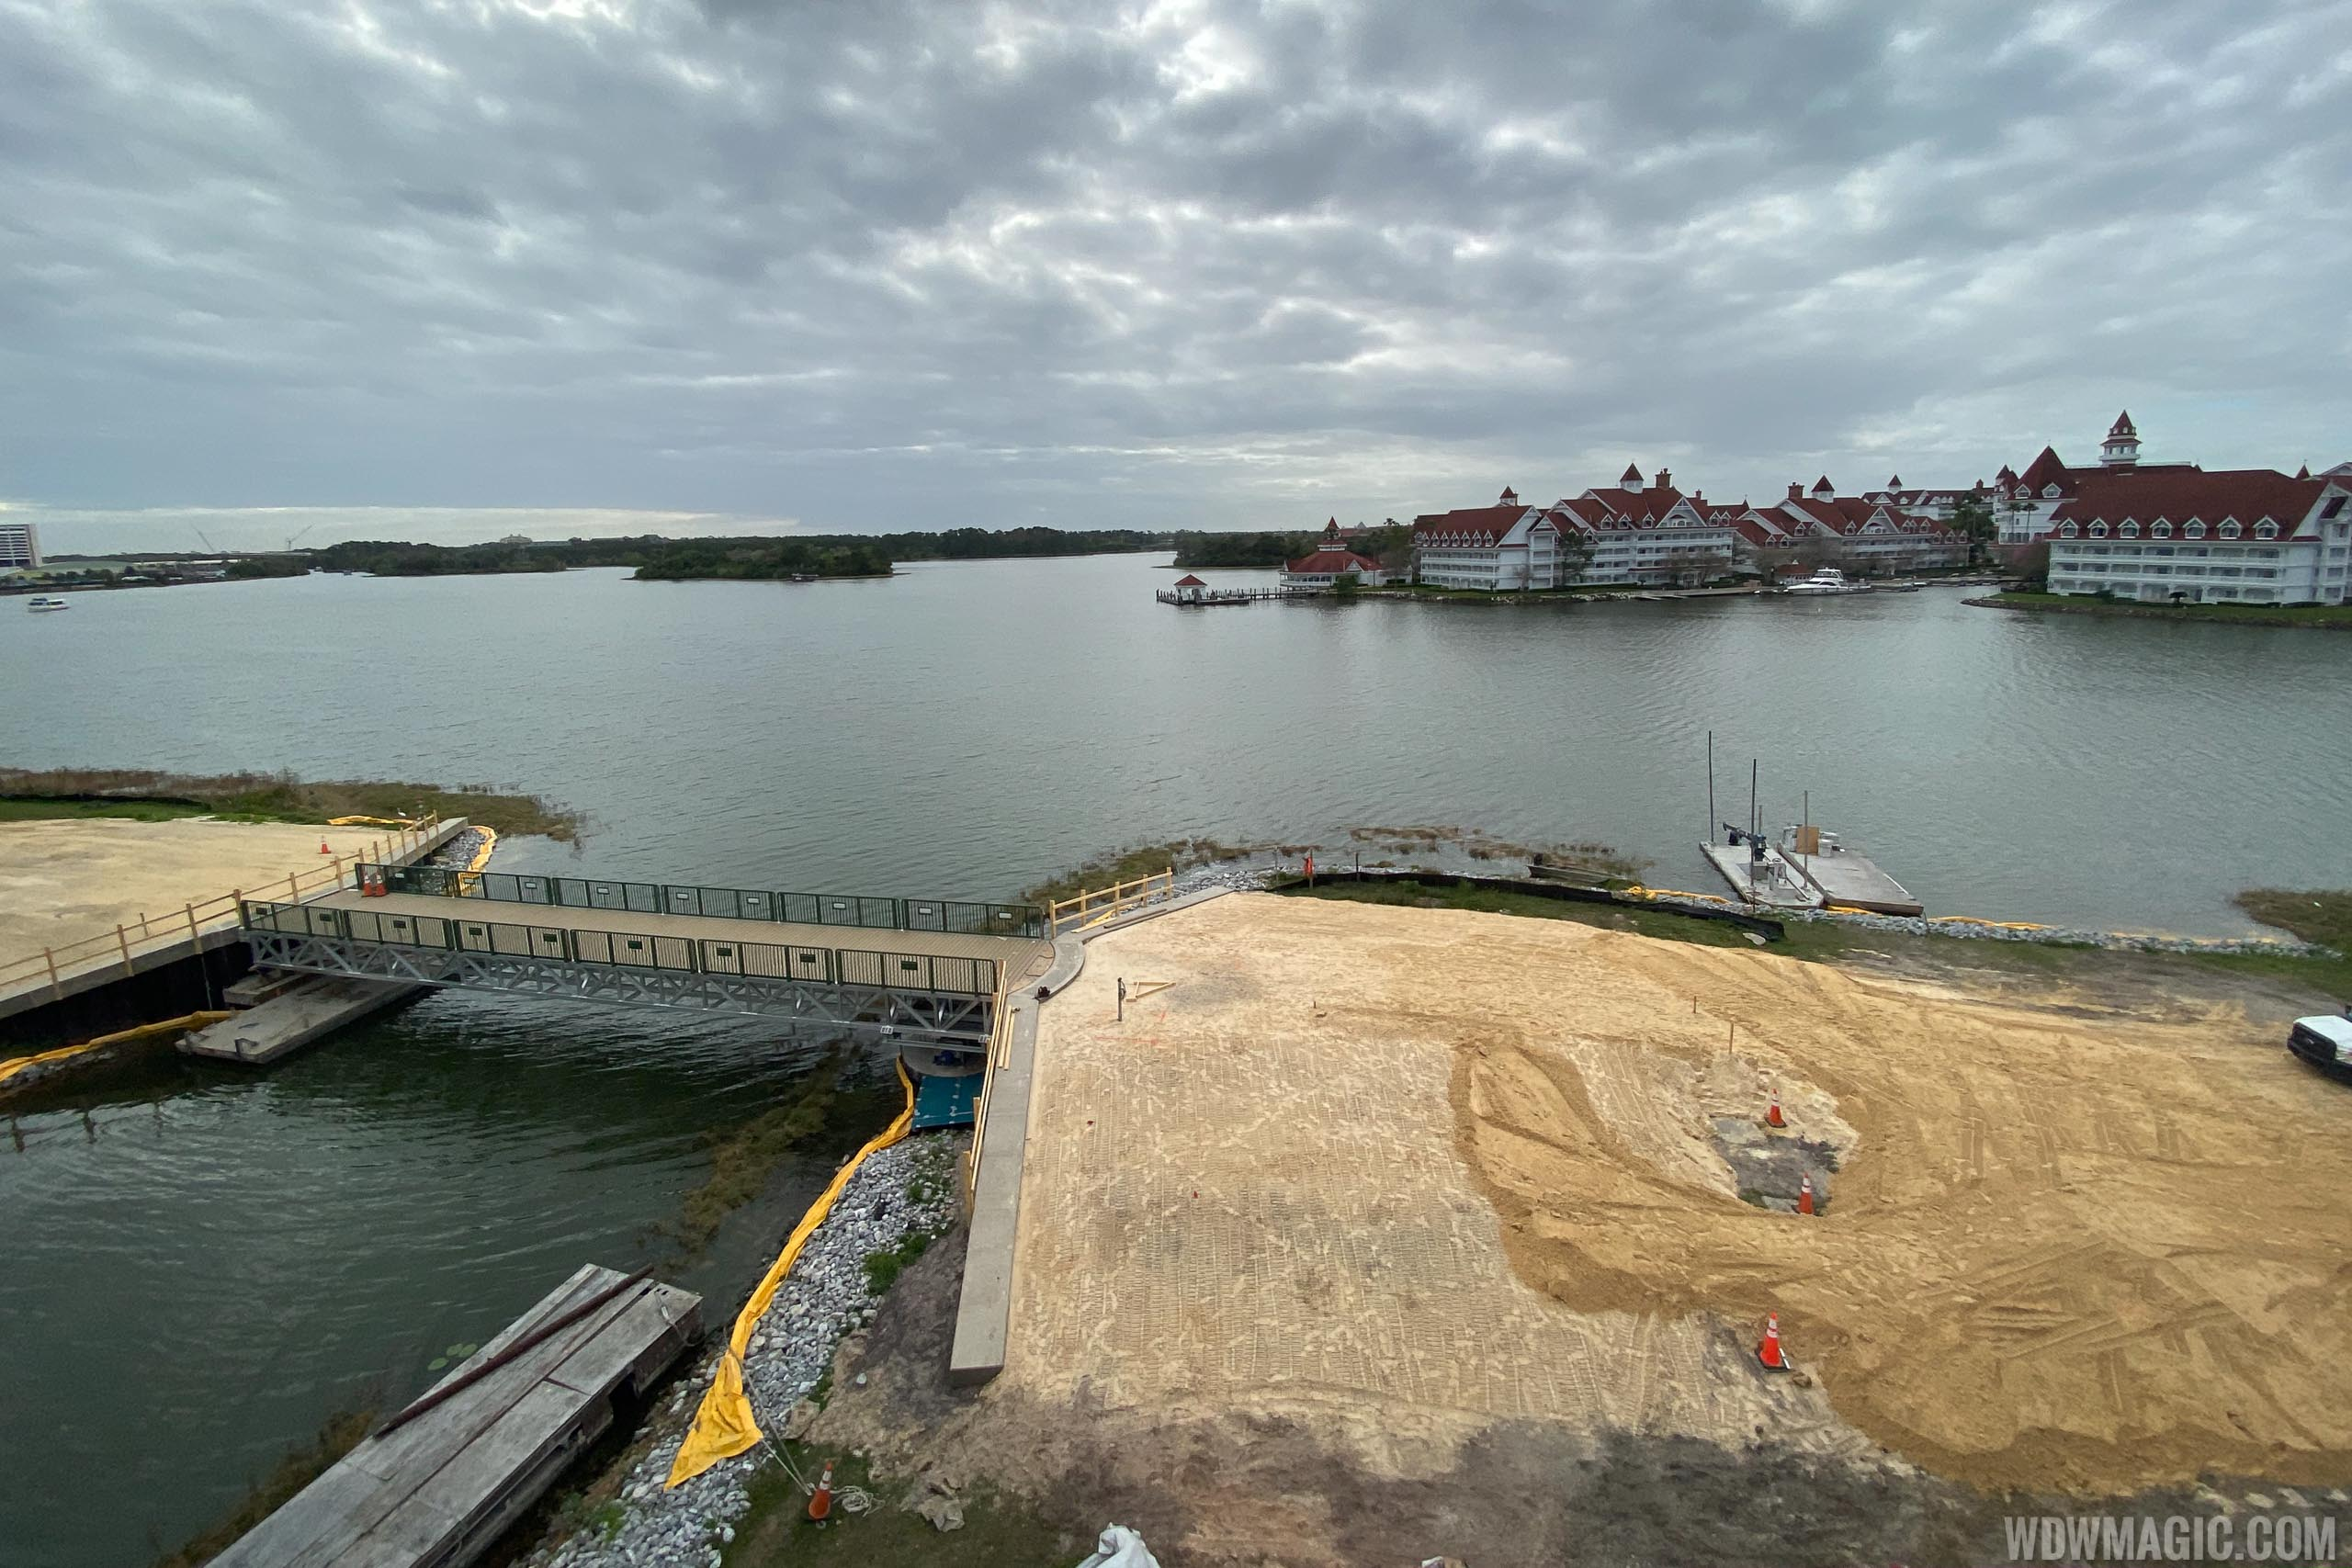 Grand Floridian to Magic Kingdom bridge construction - March 9 2020